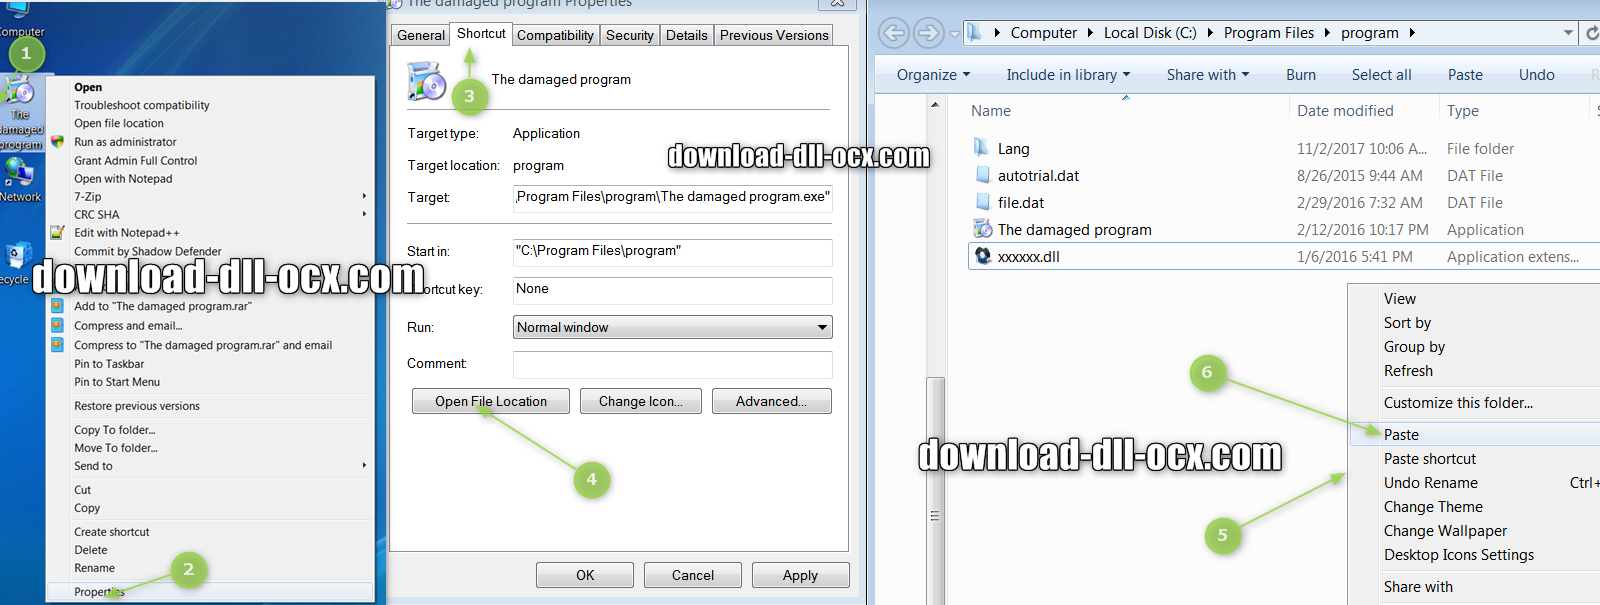 how to install Kademlia.dll file? for fix missing